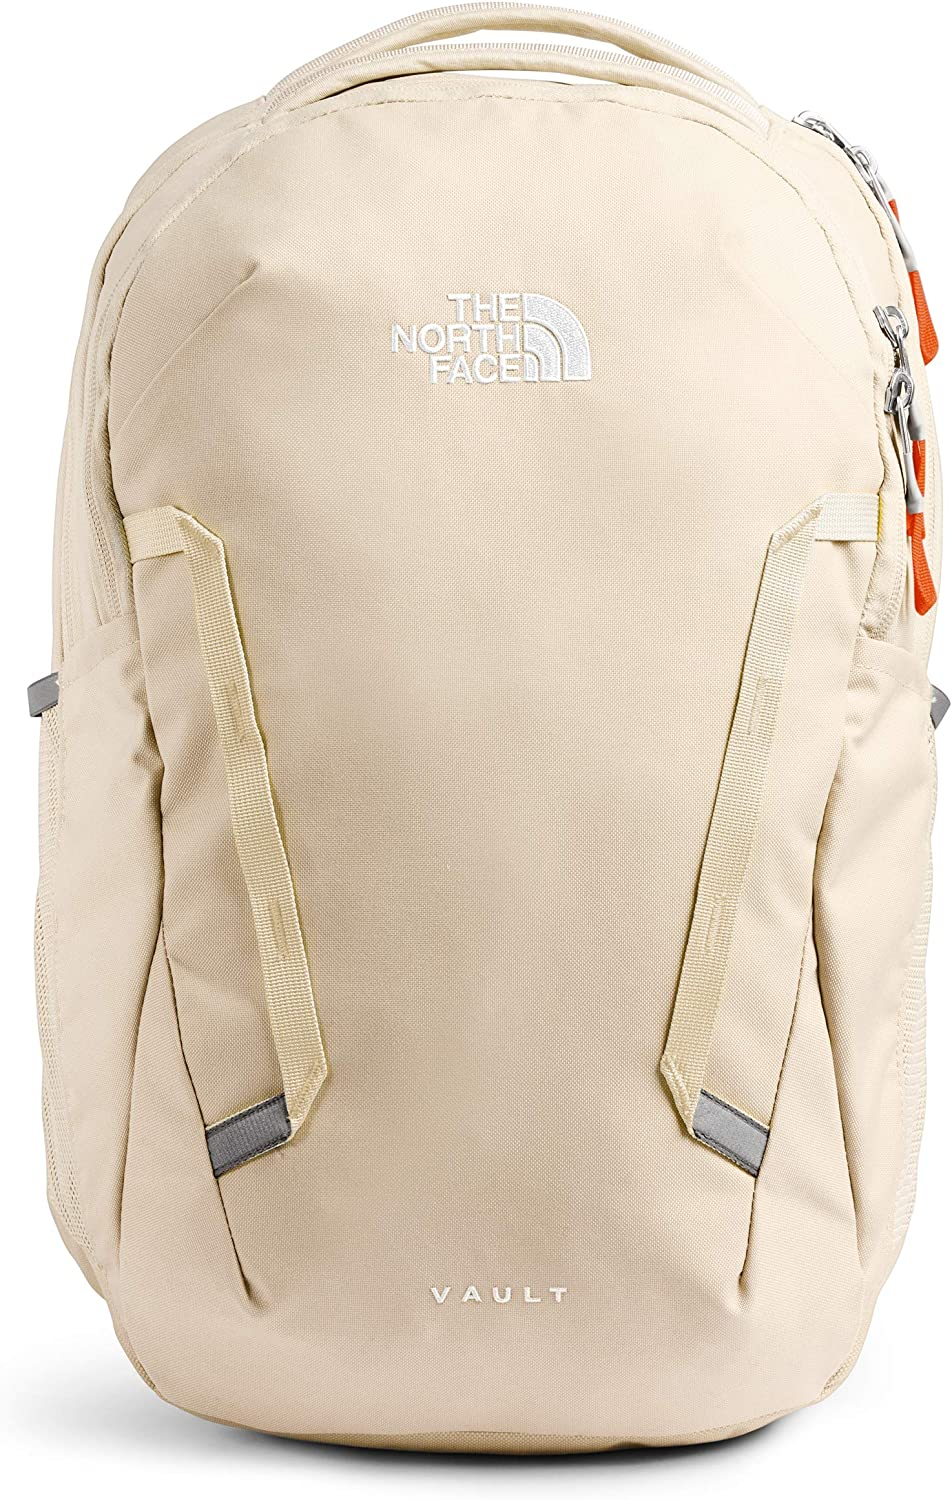 The North Face Vault Mochila para mujer